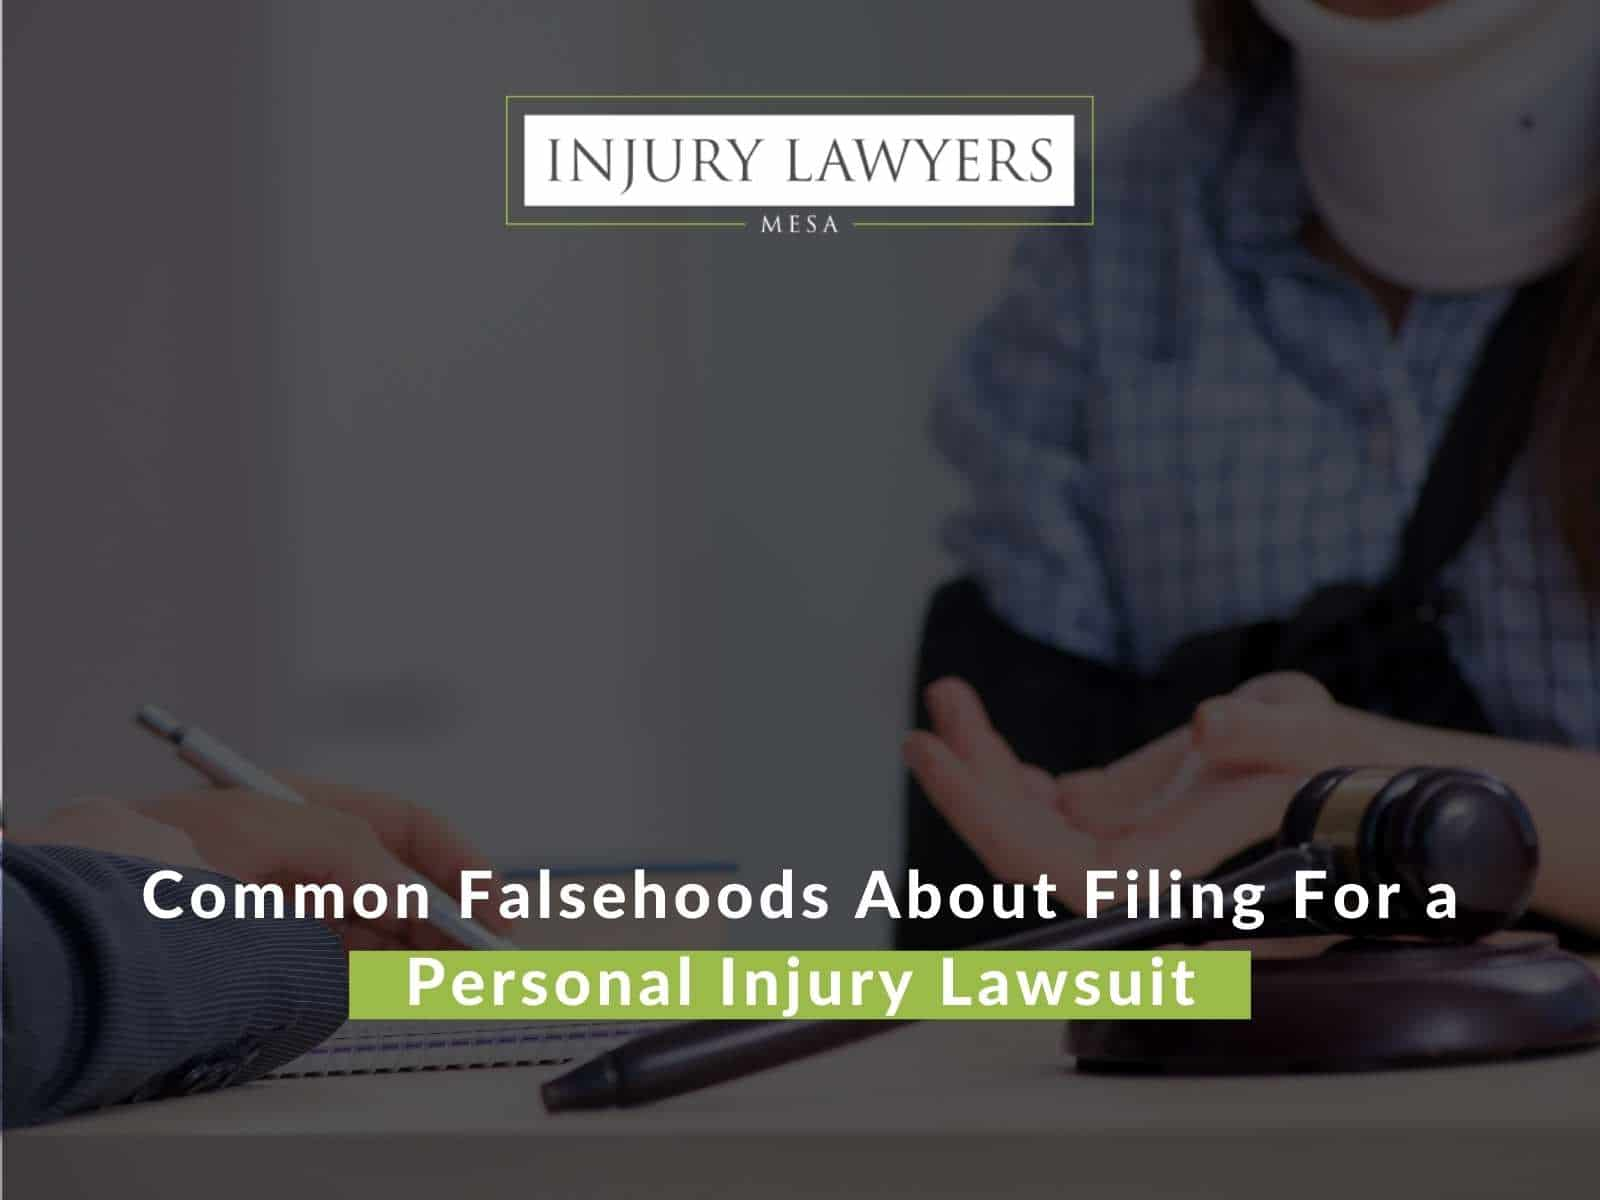 Common Falsehoods About Filing For a Personal Injury Lawsuit